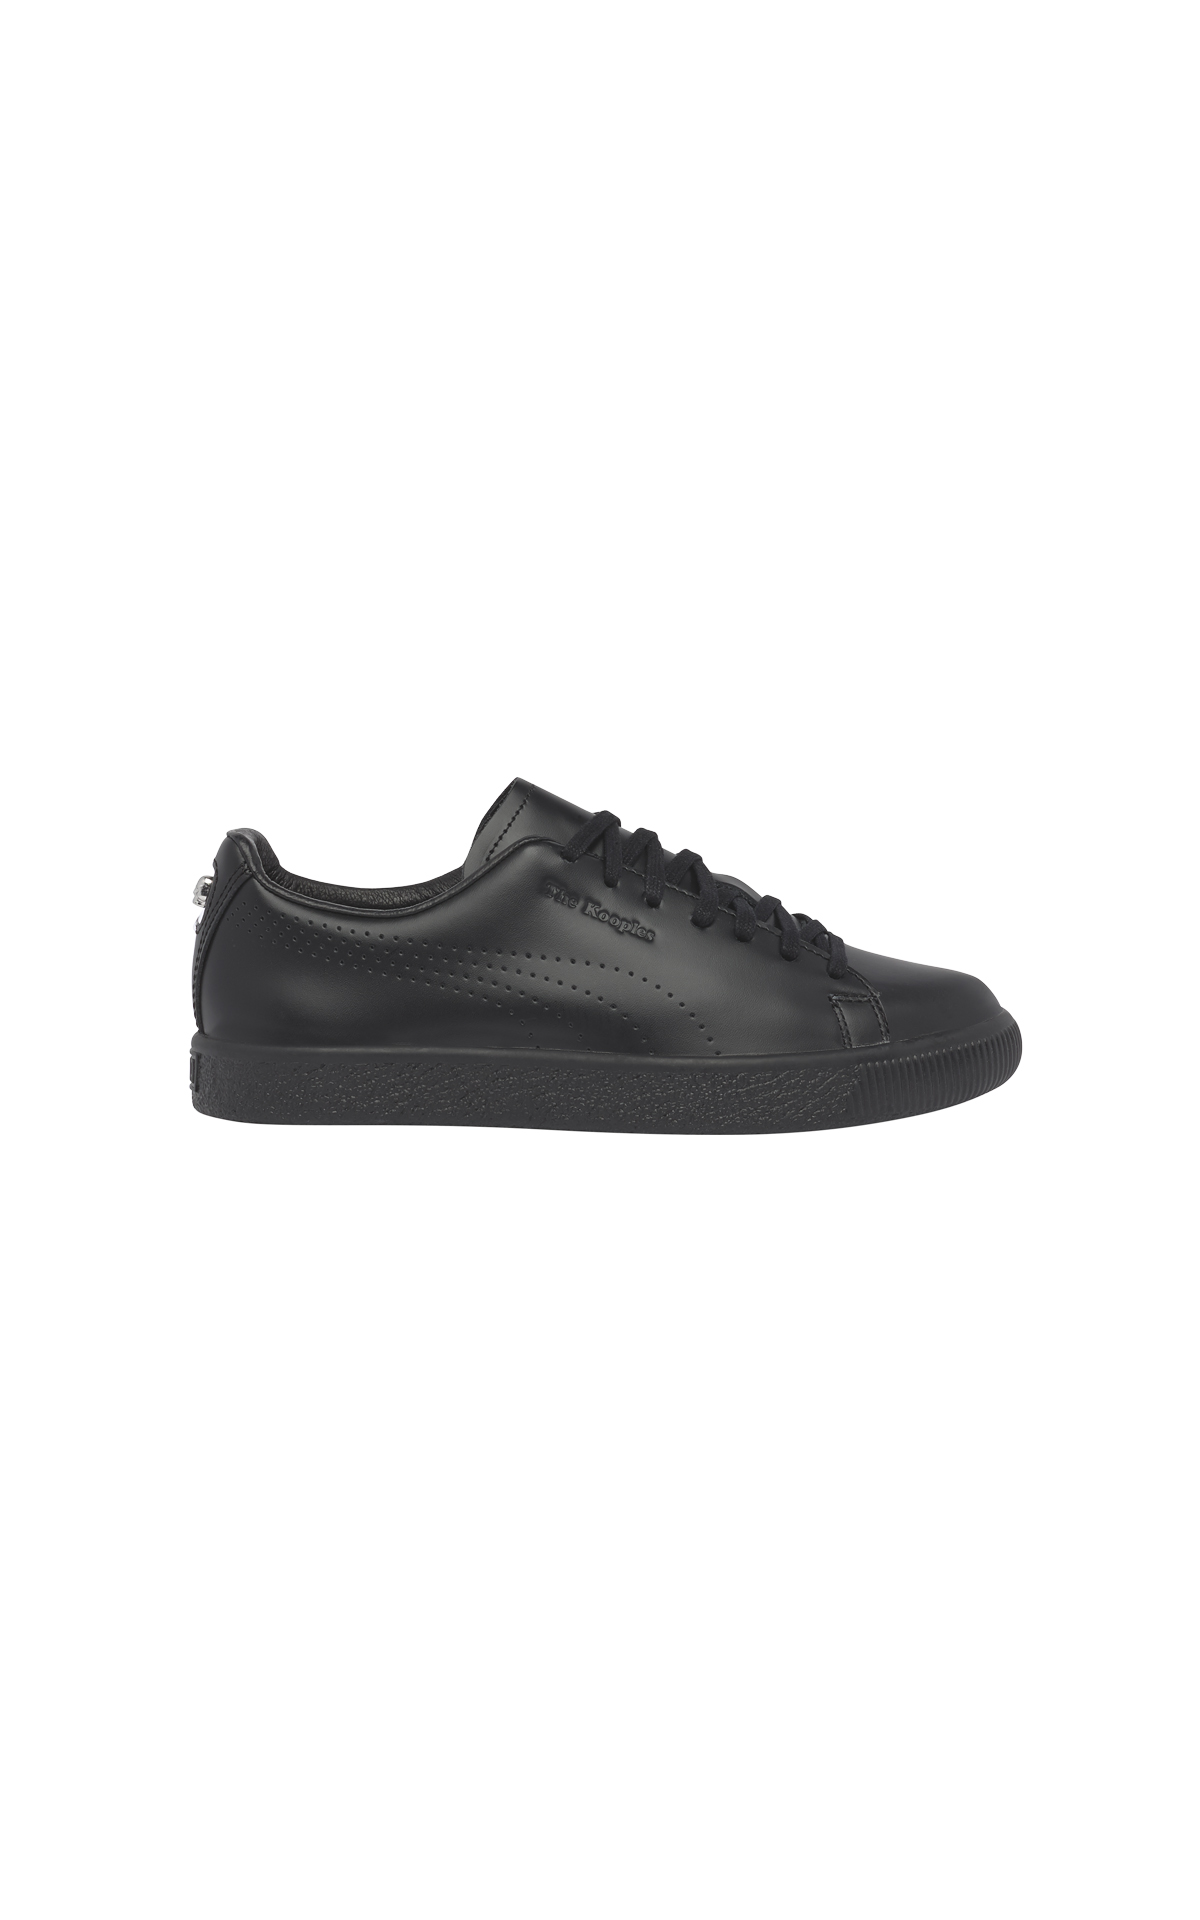 Black sneakers The Kooples